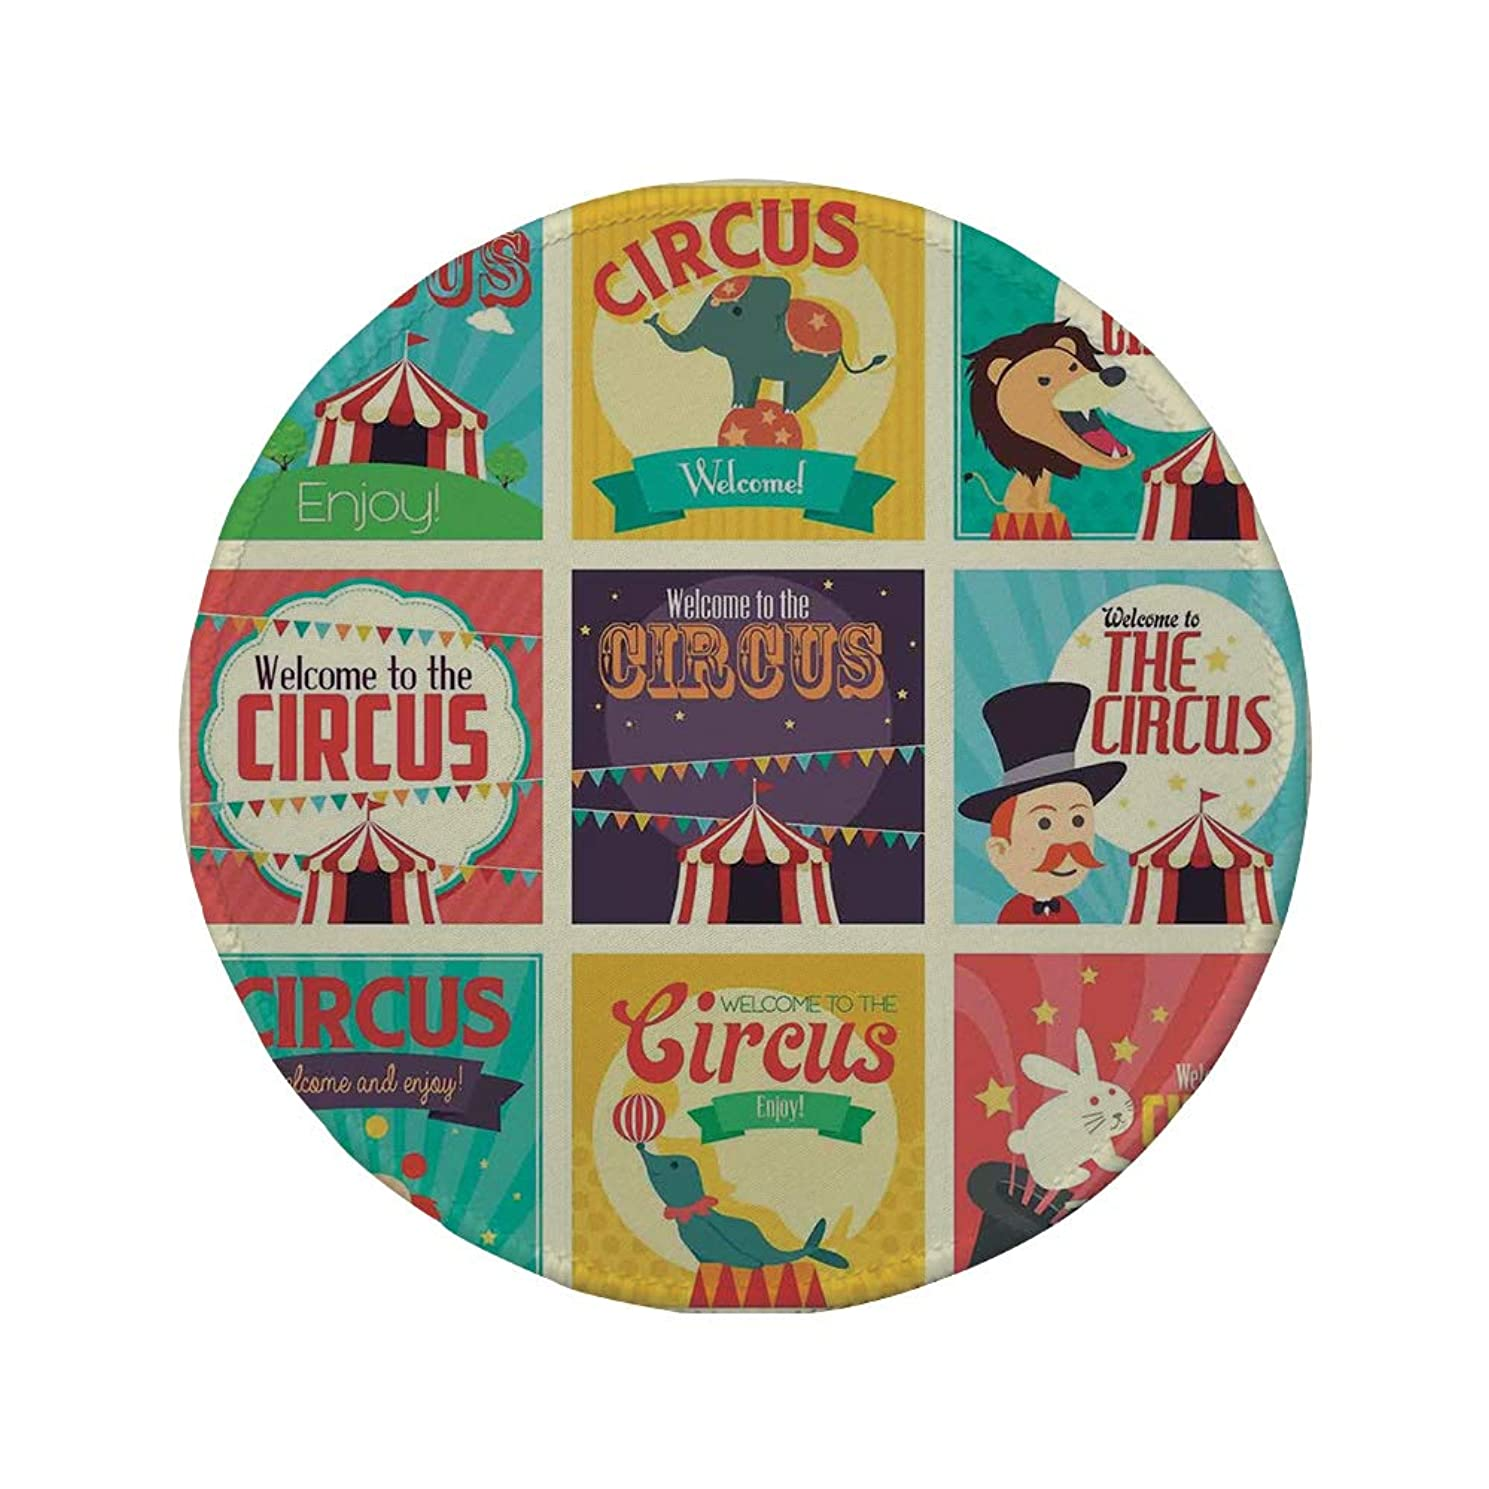 Non-Slip Rubber Round Mouse Pad,Circus Decor,Collection of Old Circus Icons Carnival Magicians Old Fashioned Nostalgic Festive Artsy Print,Multi,11.8